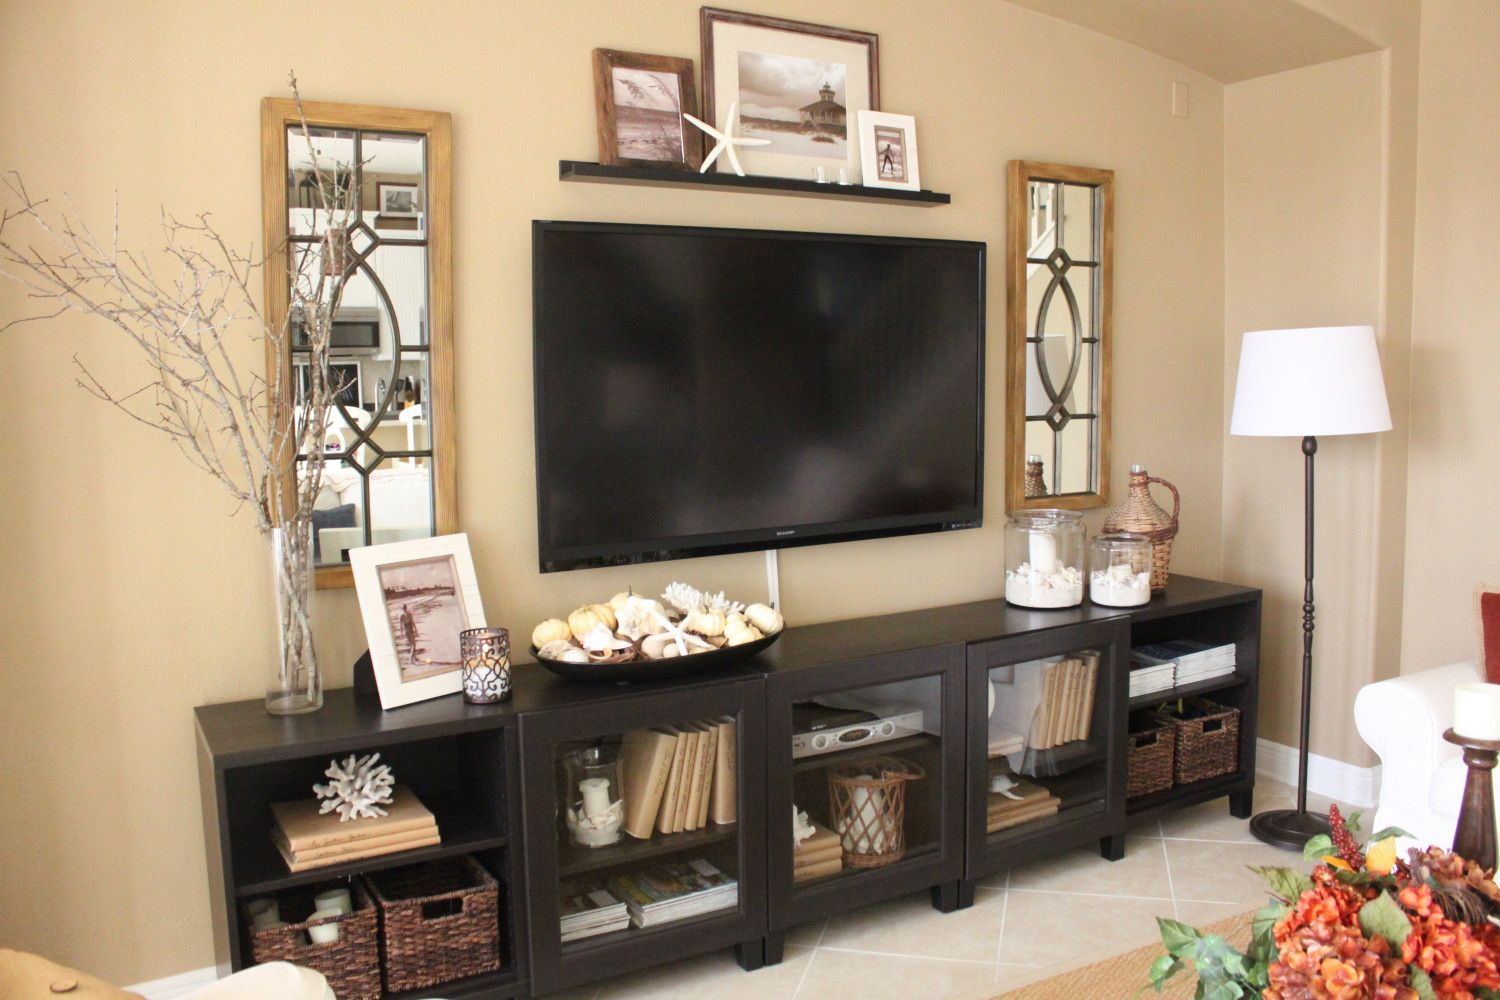 Decorating Ideas Around Tv On Wall Family Room After The Big Reveal Living Room Ideas